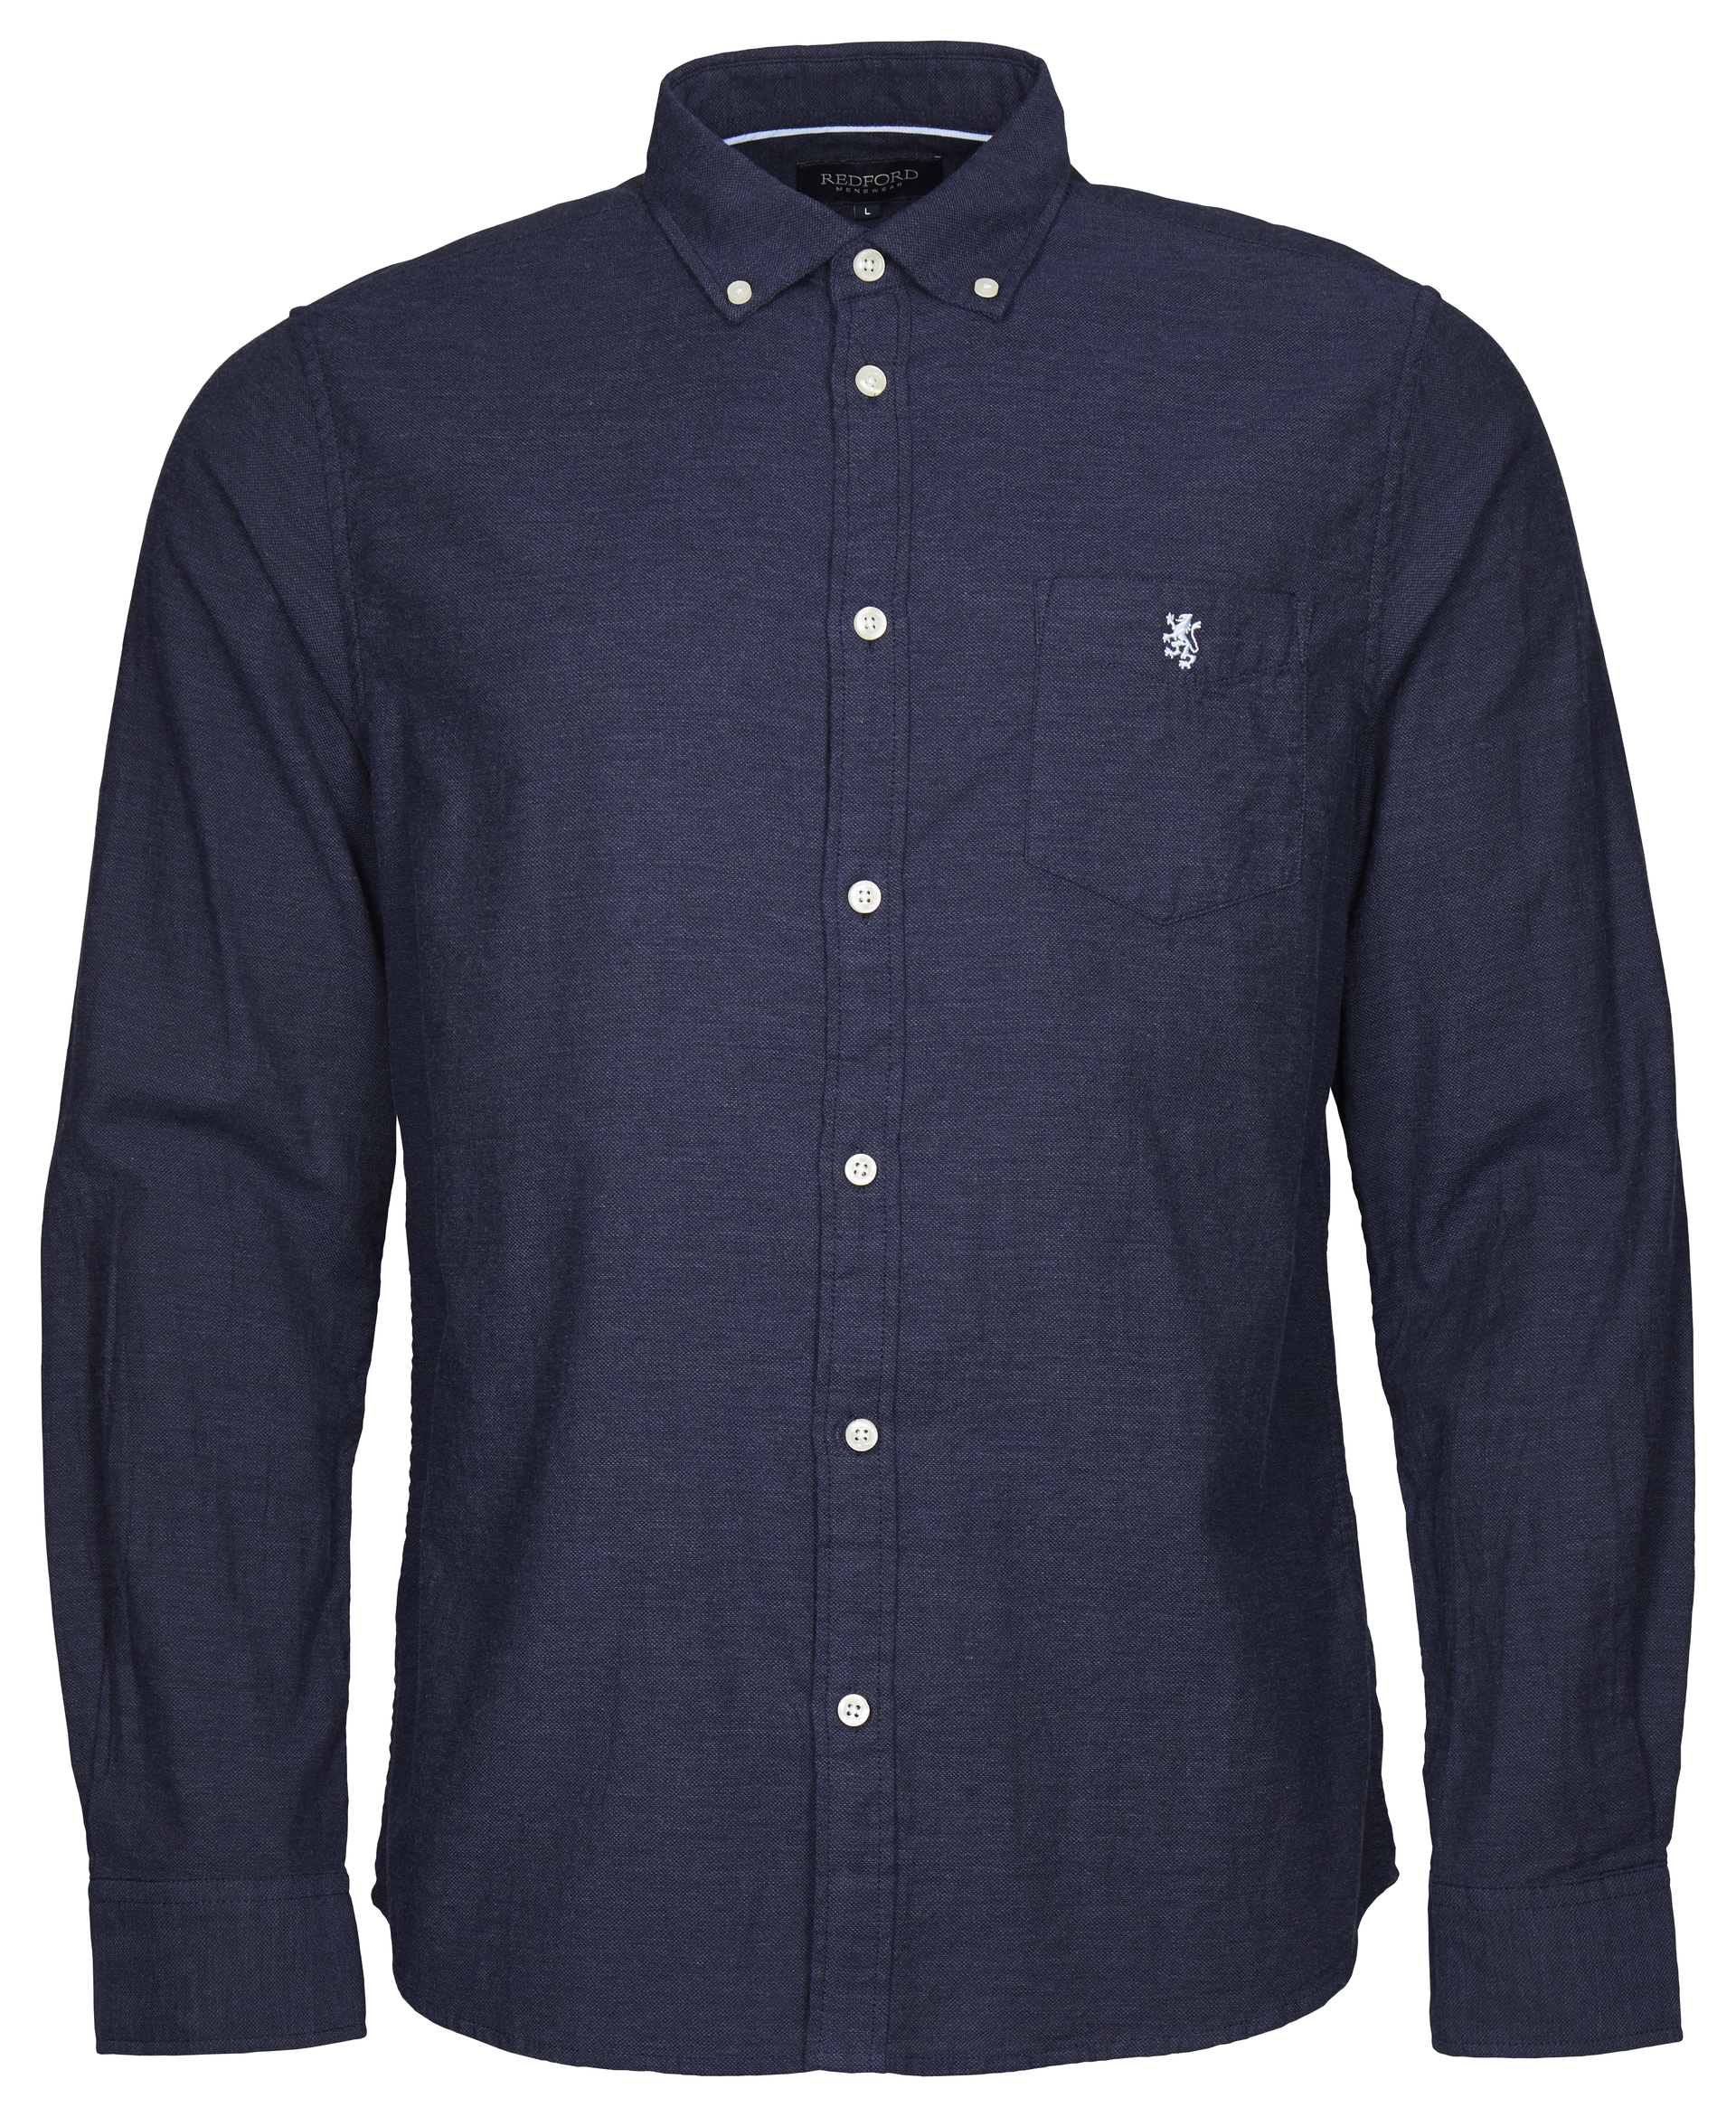 Danbury Skjorte Dress Blues | MATCH nettbutikk